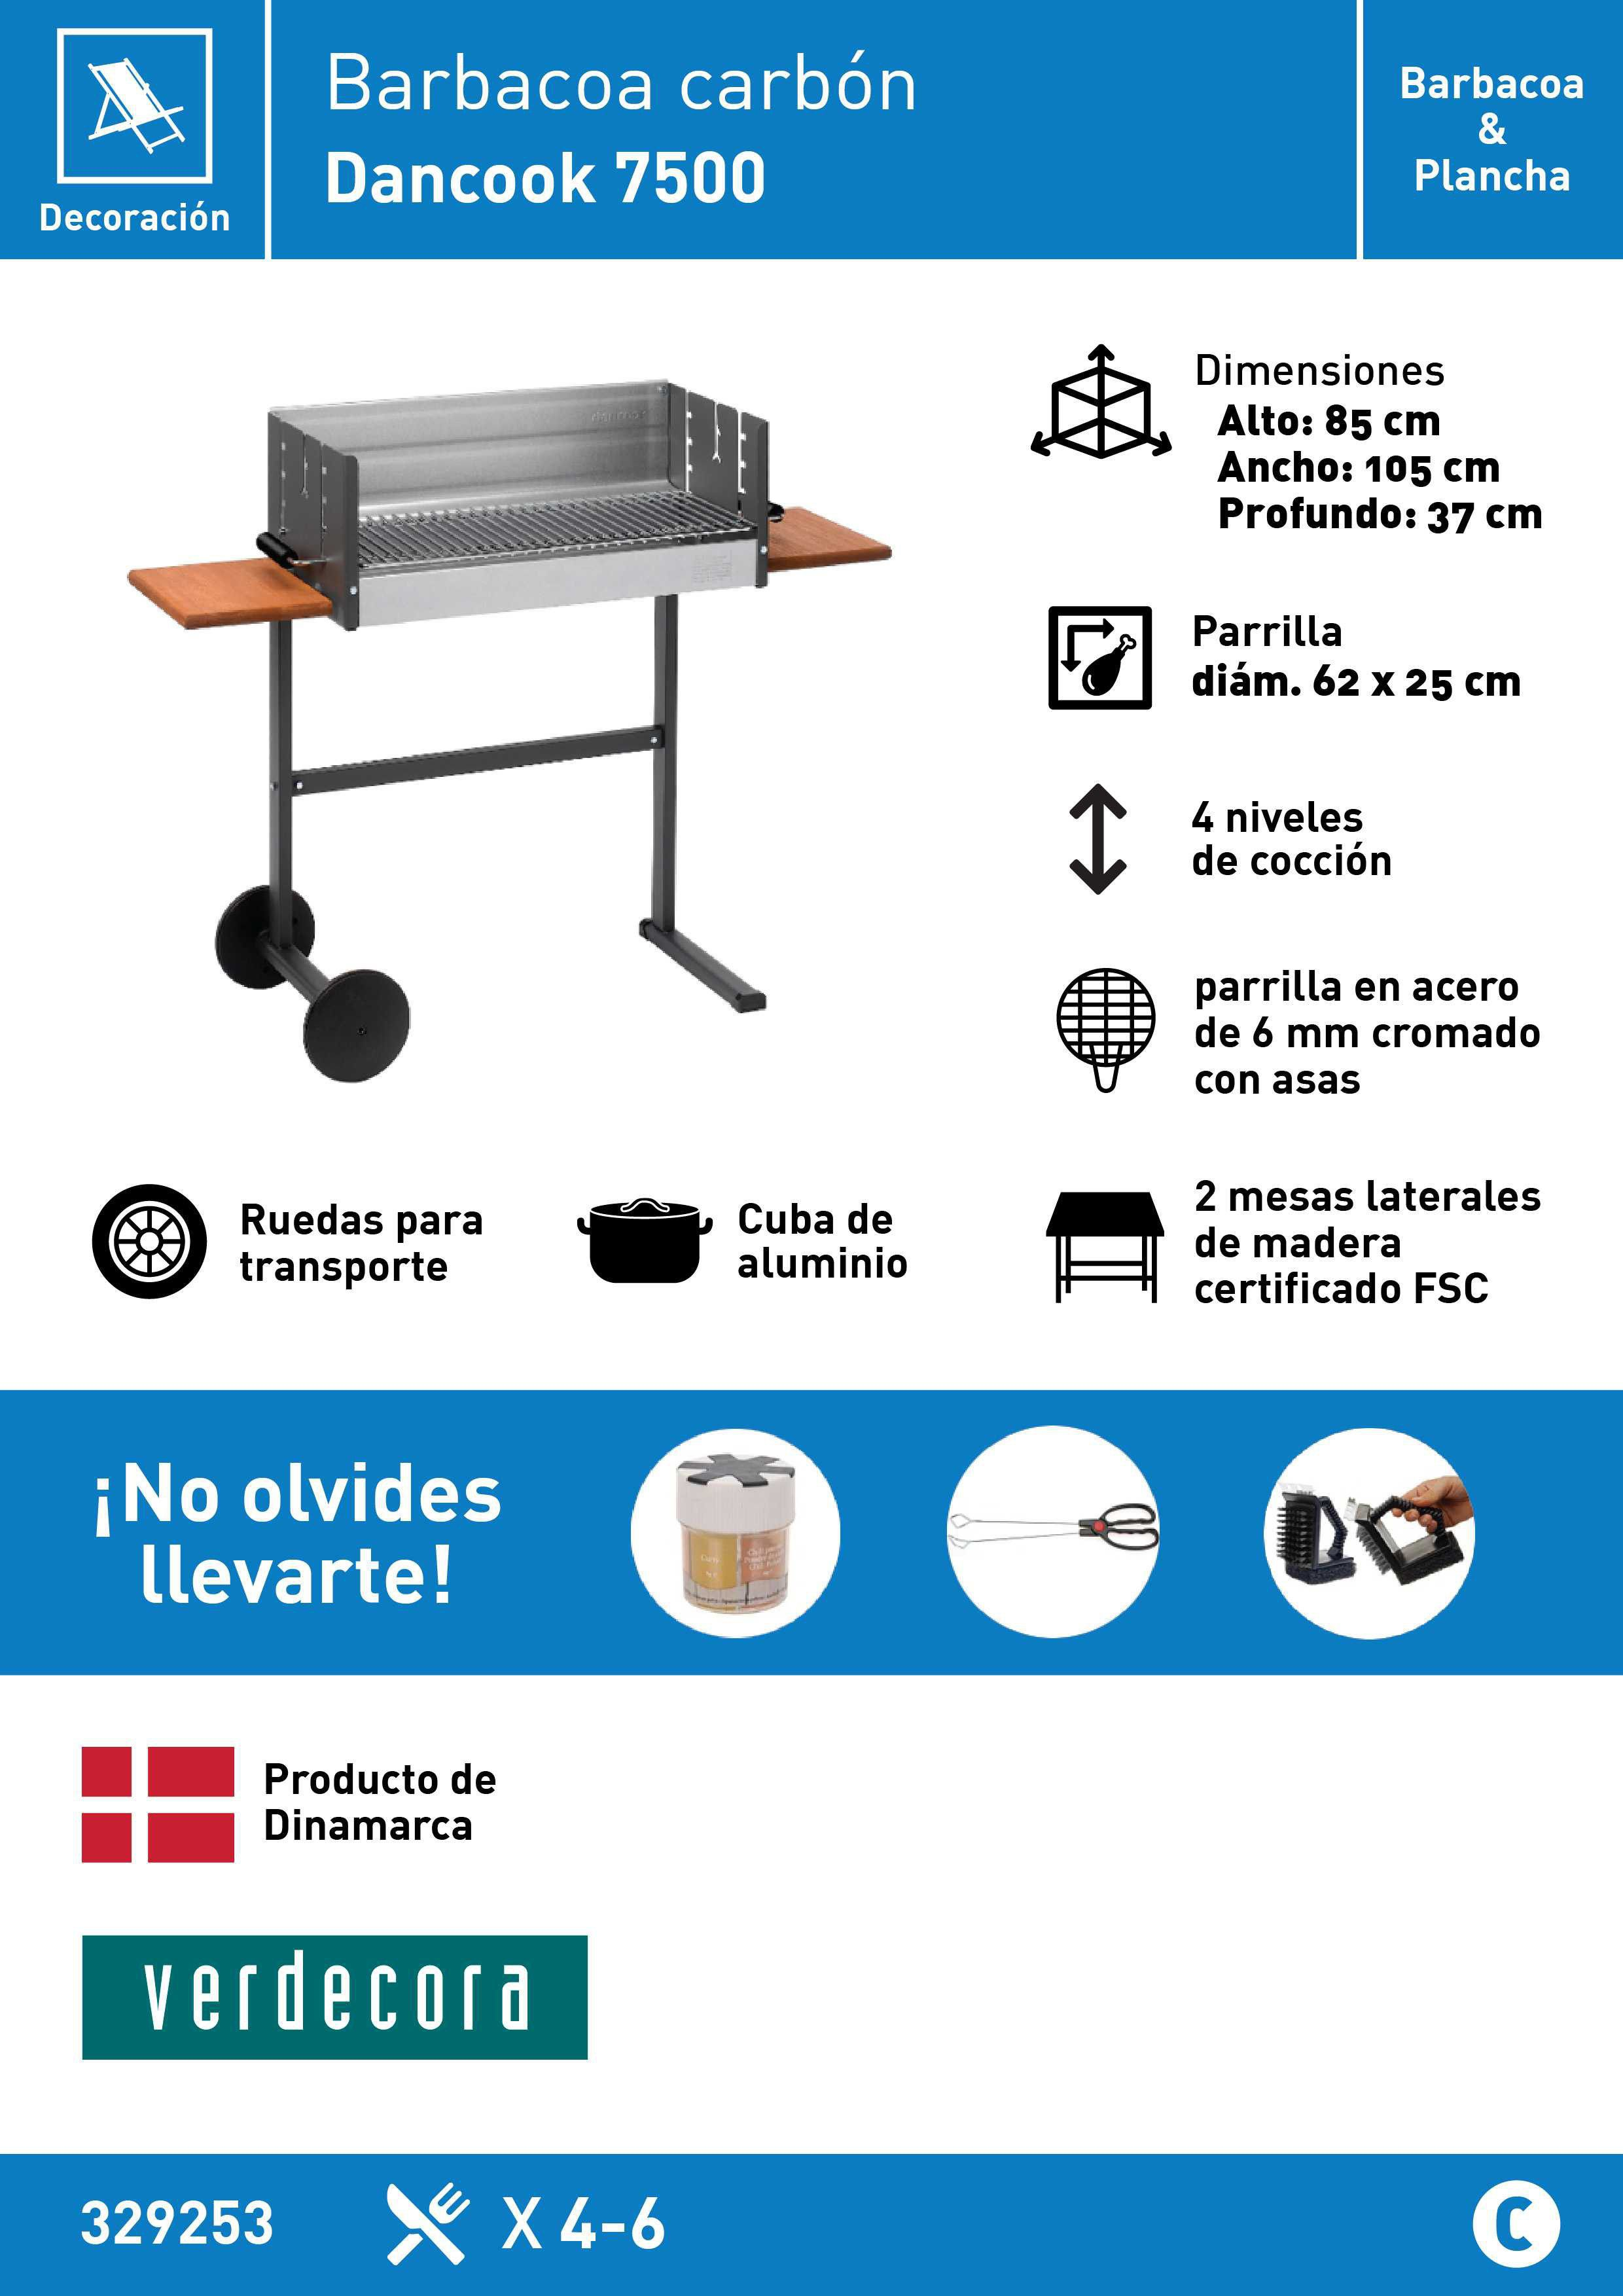 Barbacoa Dancook 7500